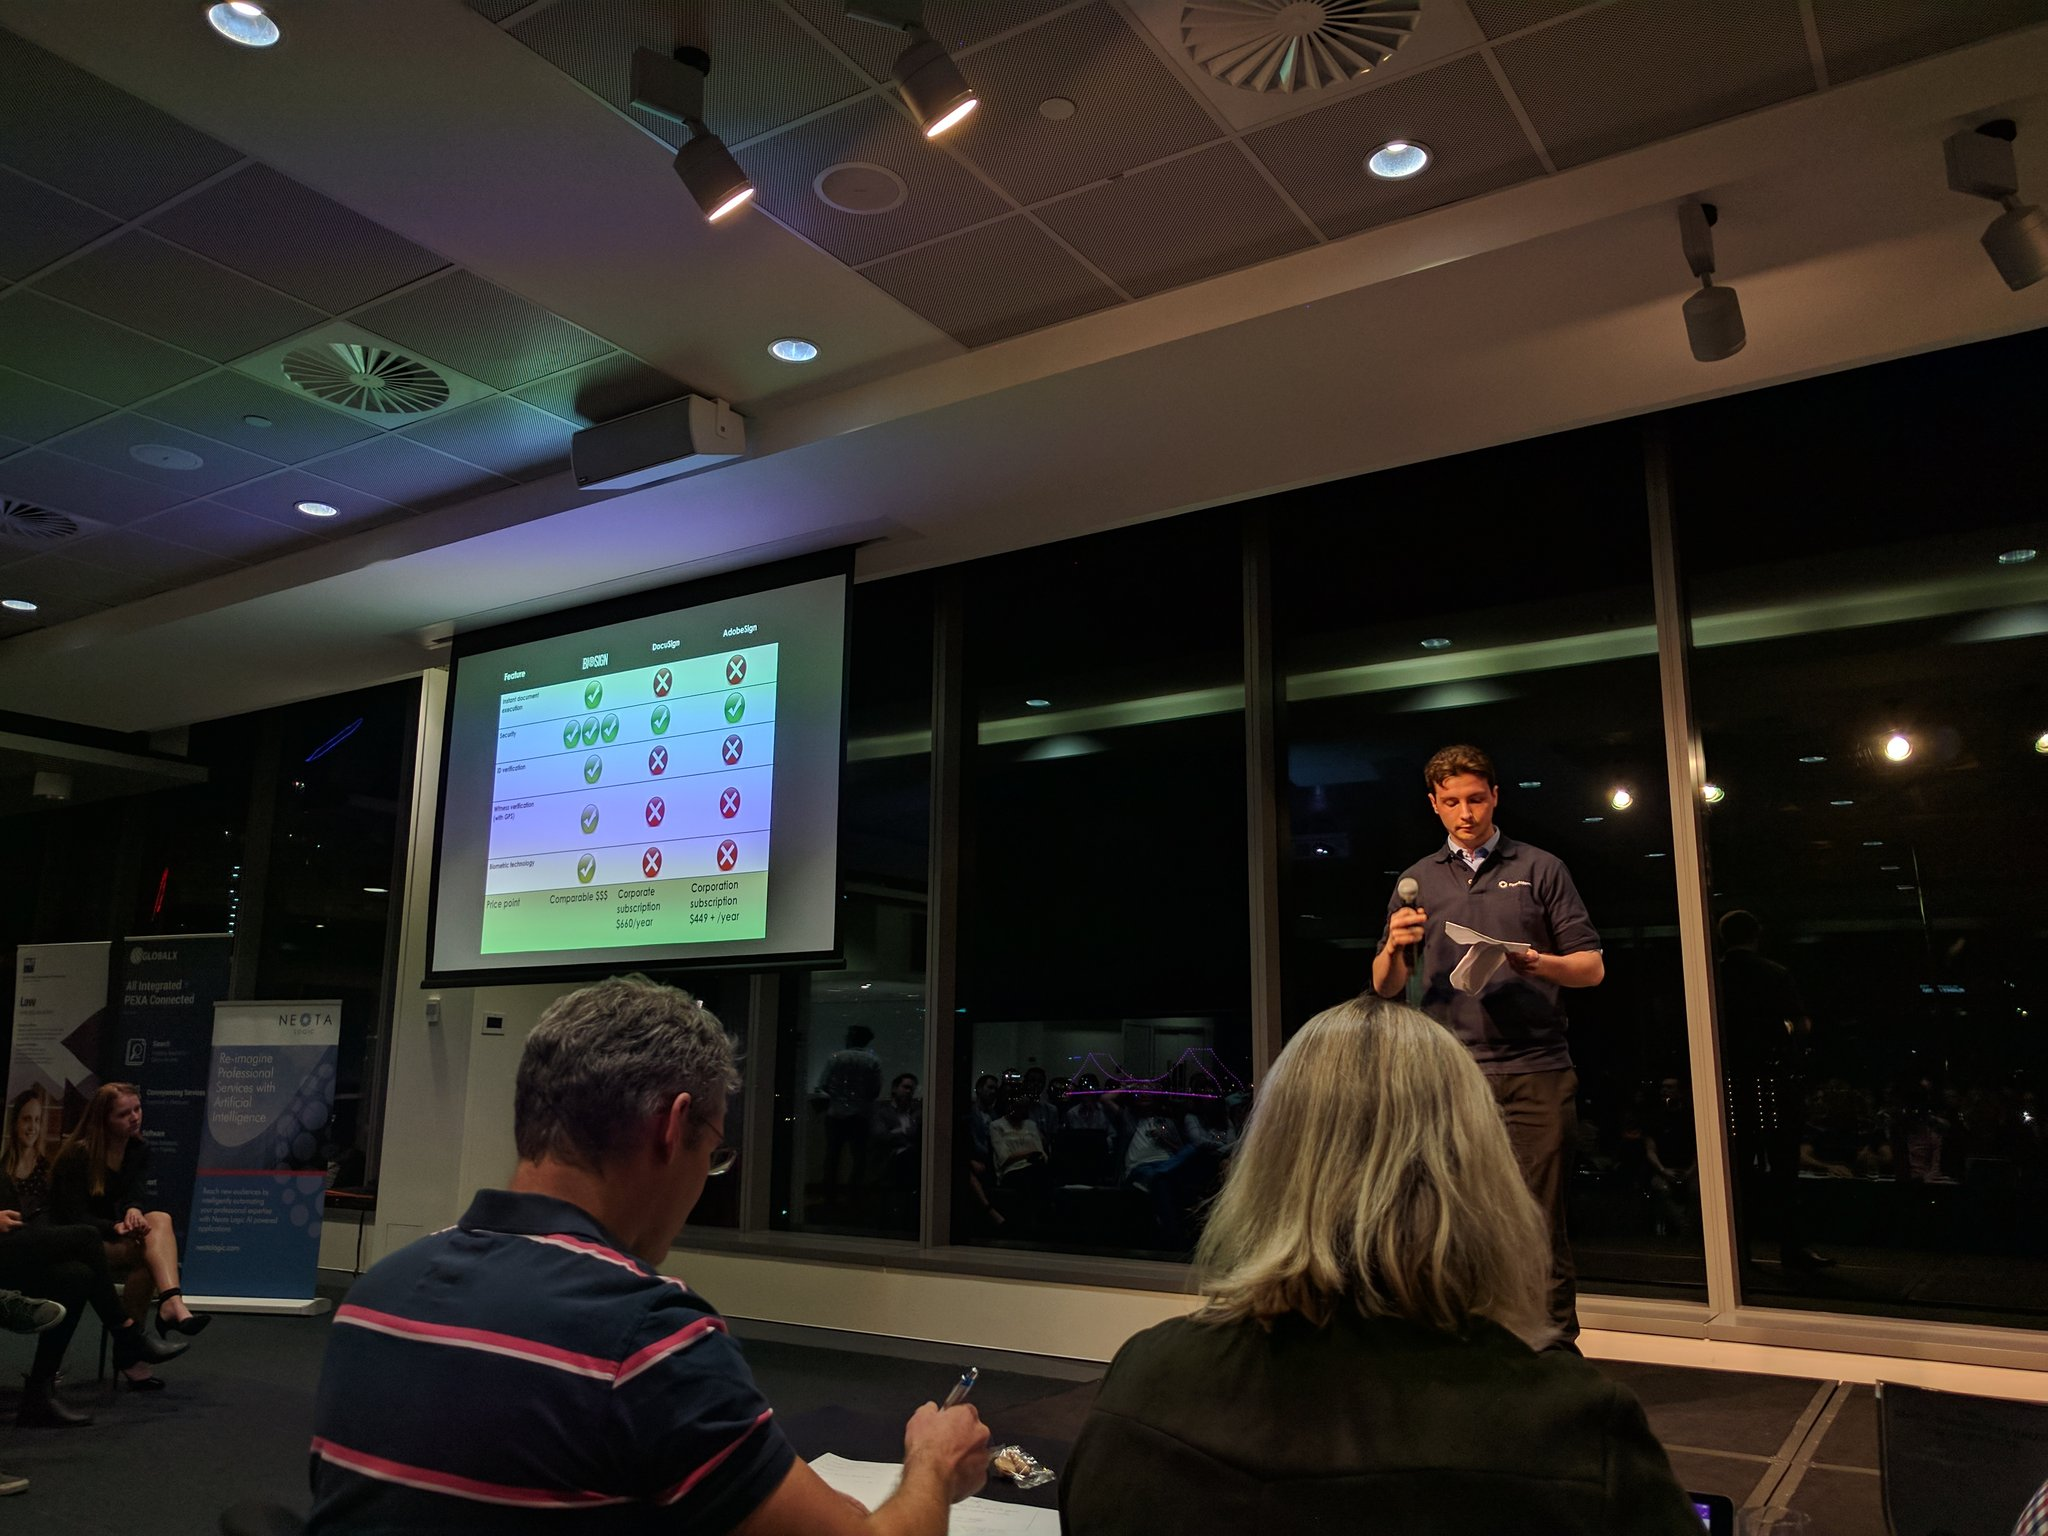 BioSign: sign securely and electronically at the touch of a button #disruptinglaw @Legal_Forecast @QUTStarters @QUTfoundry @PiperAlderman https://t.co/RWZEdXaWMf